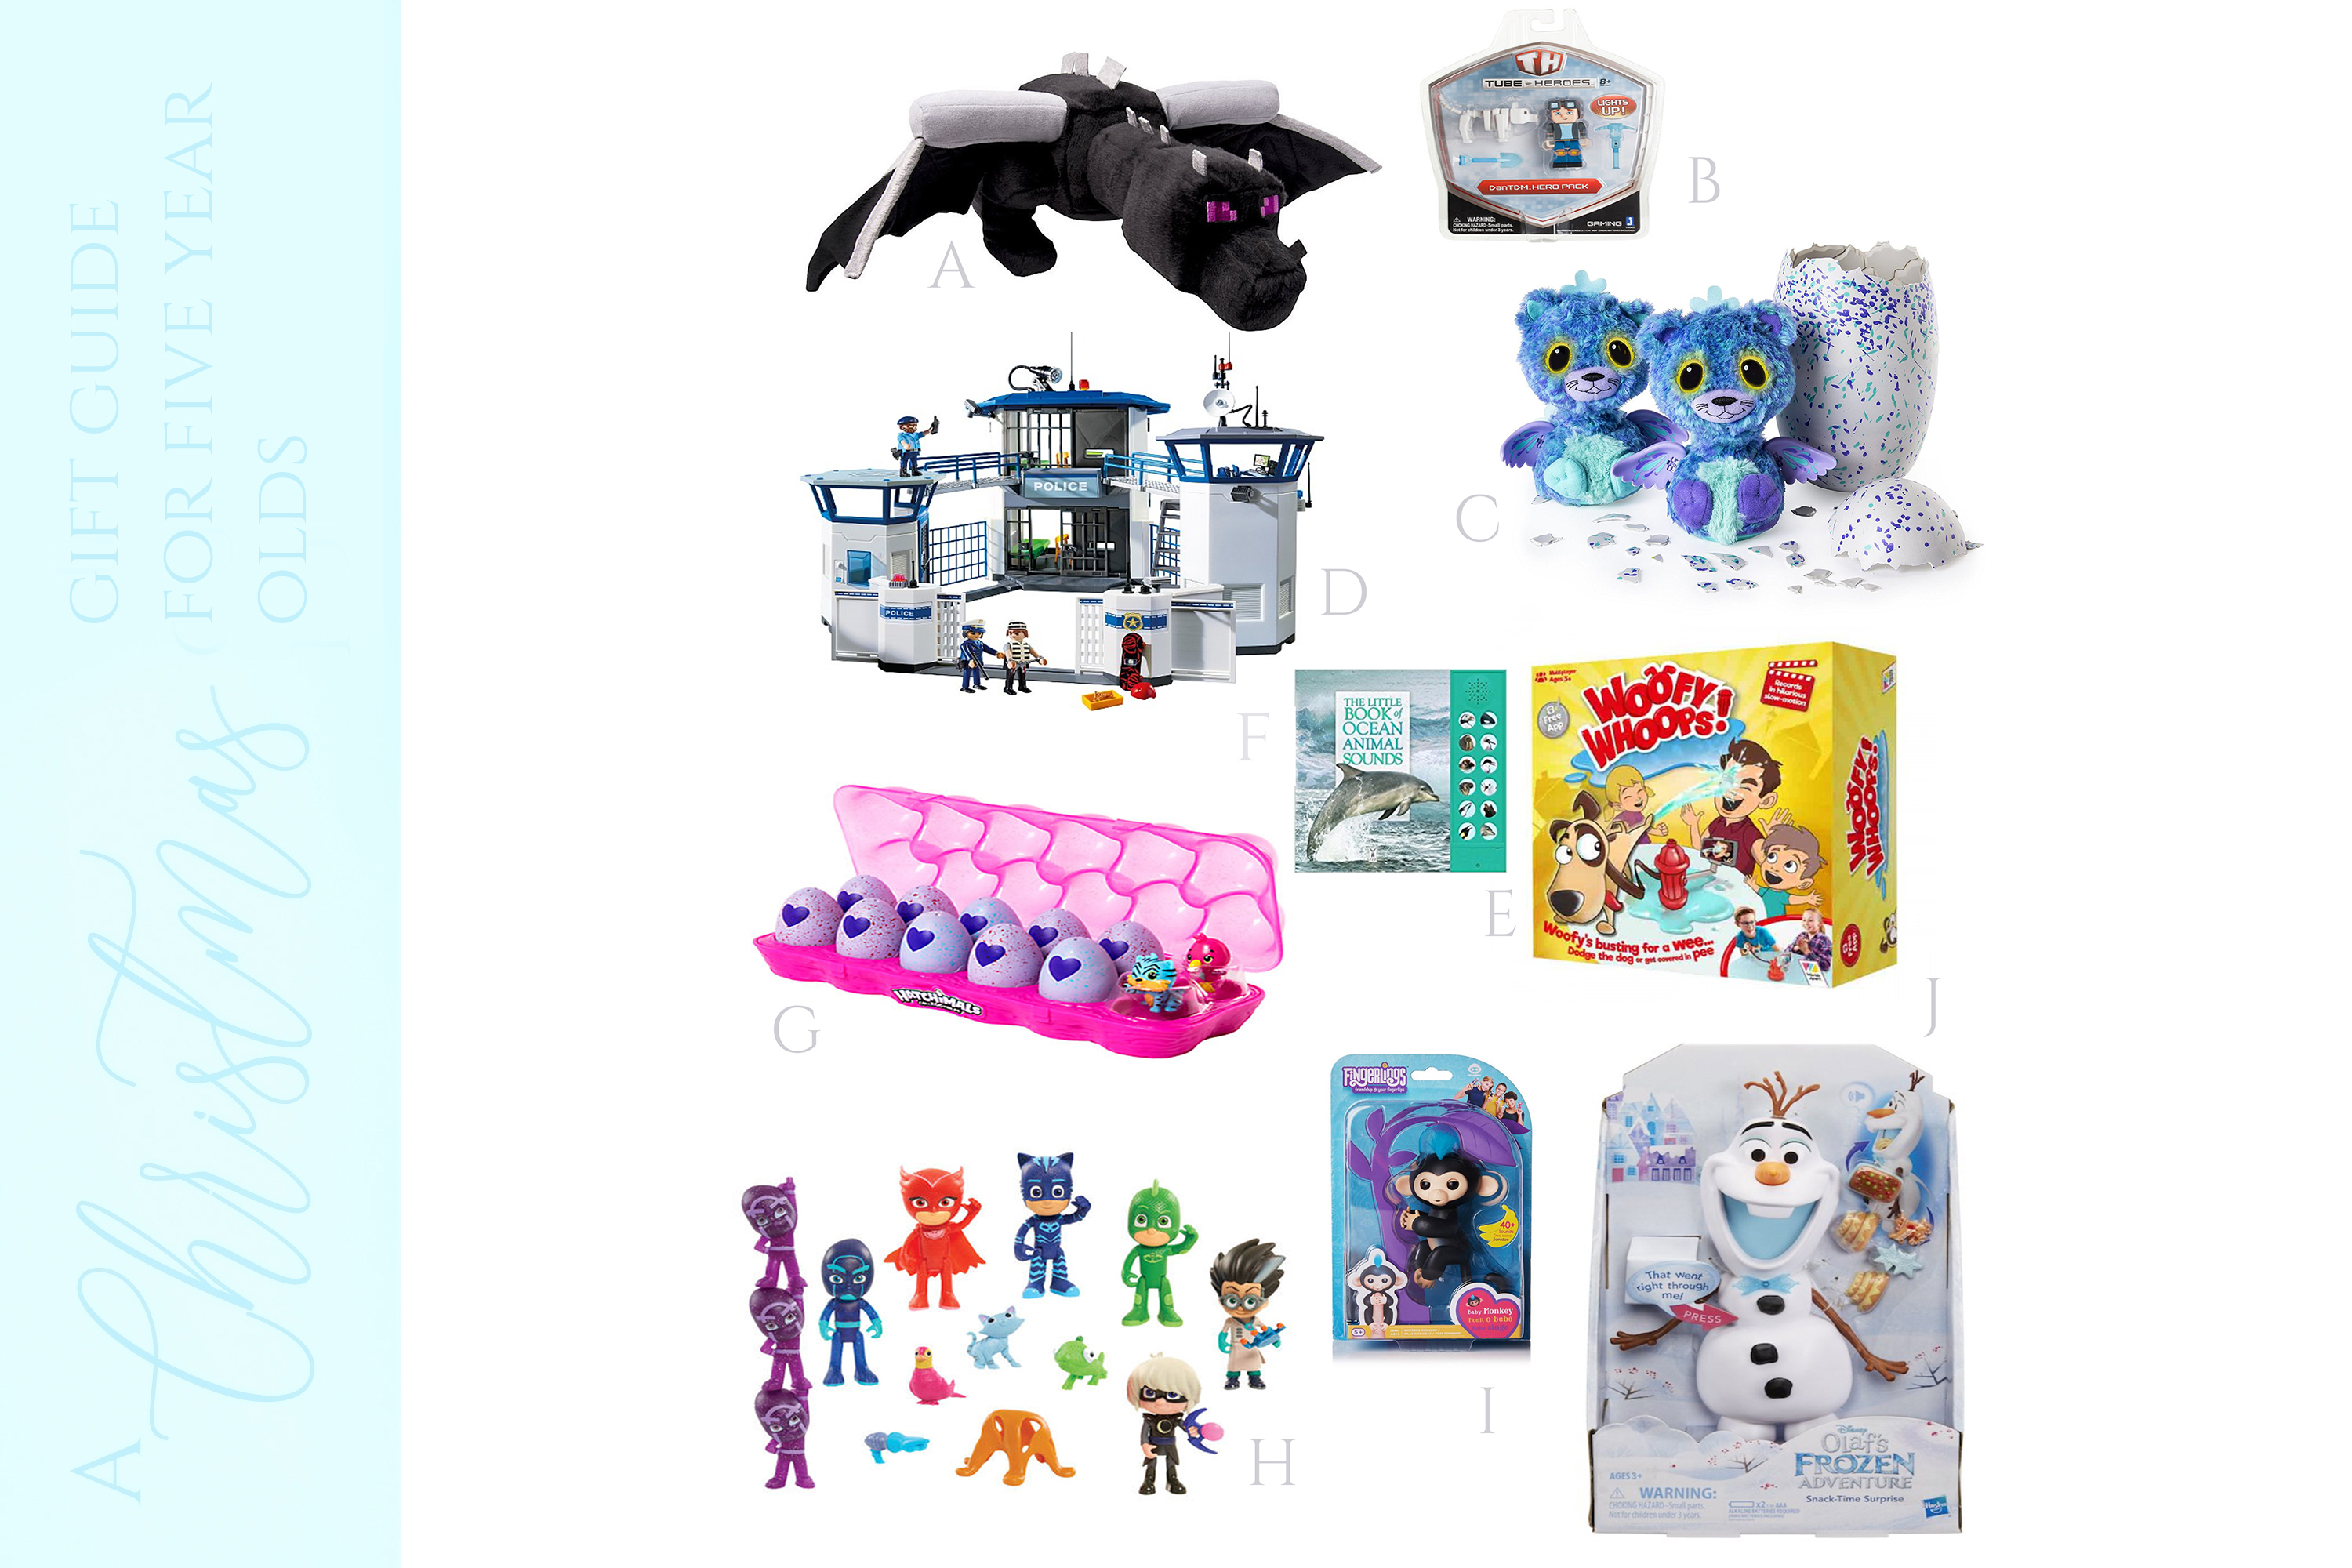 A CHRISTMAS GIFT GUIDE FOR 5 YEAR OLD BOYS